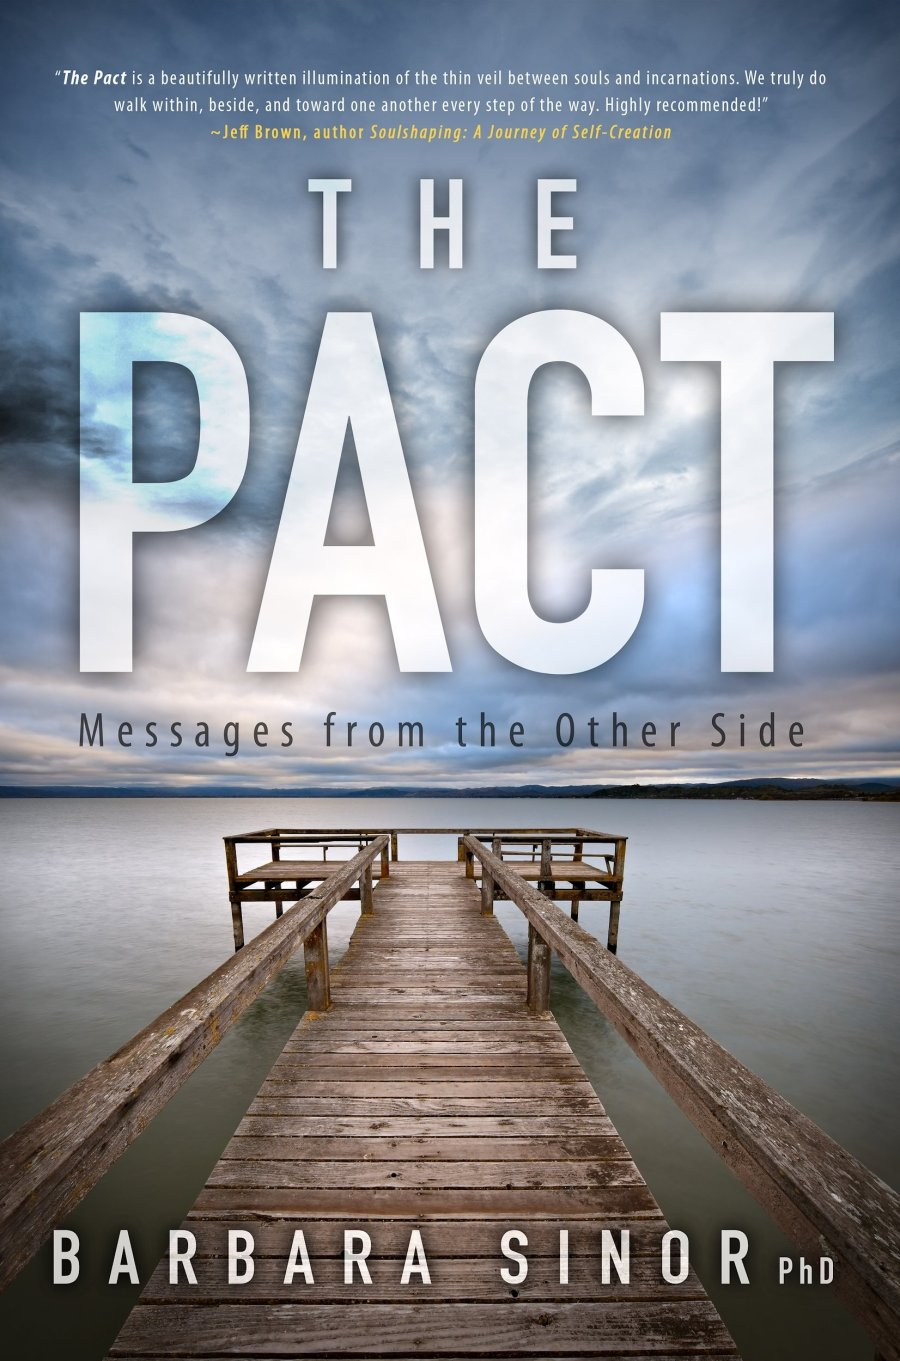 The Pact: Messages From the Other Side 978-1-61599-214-0